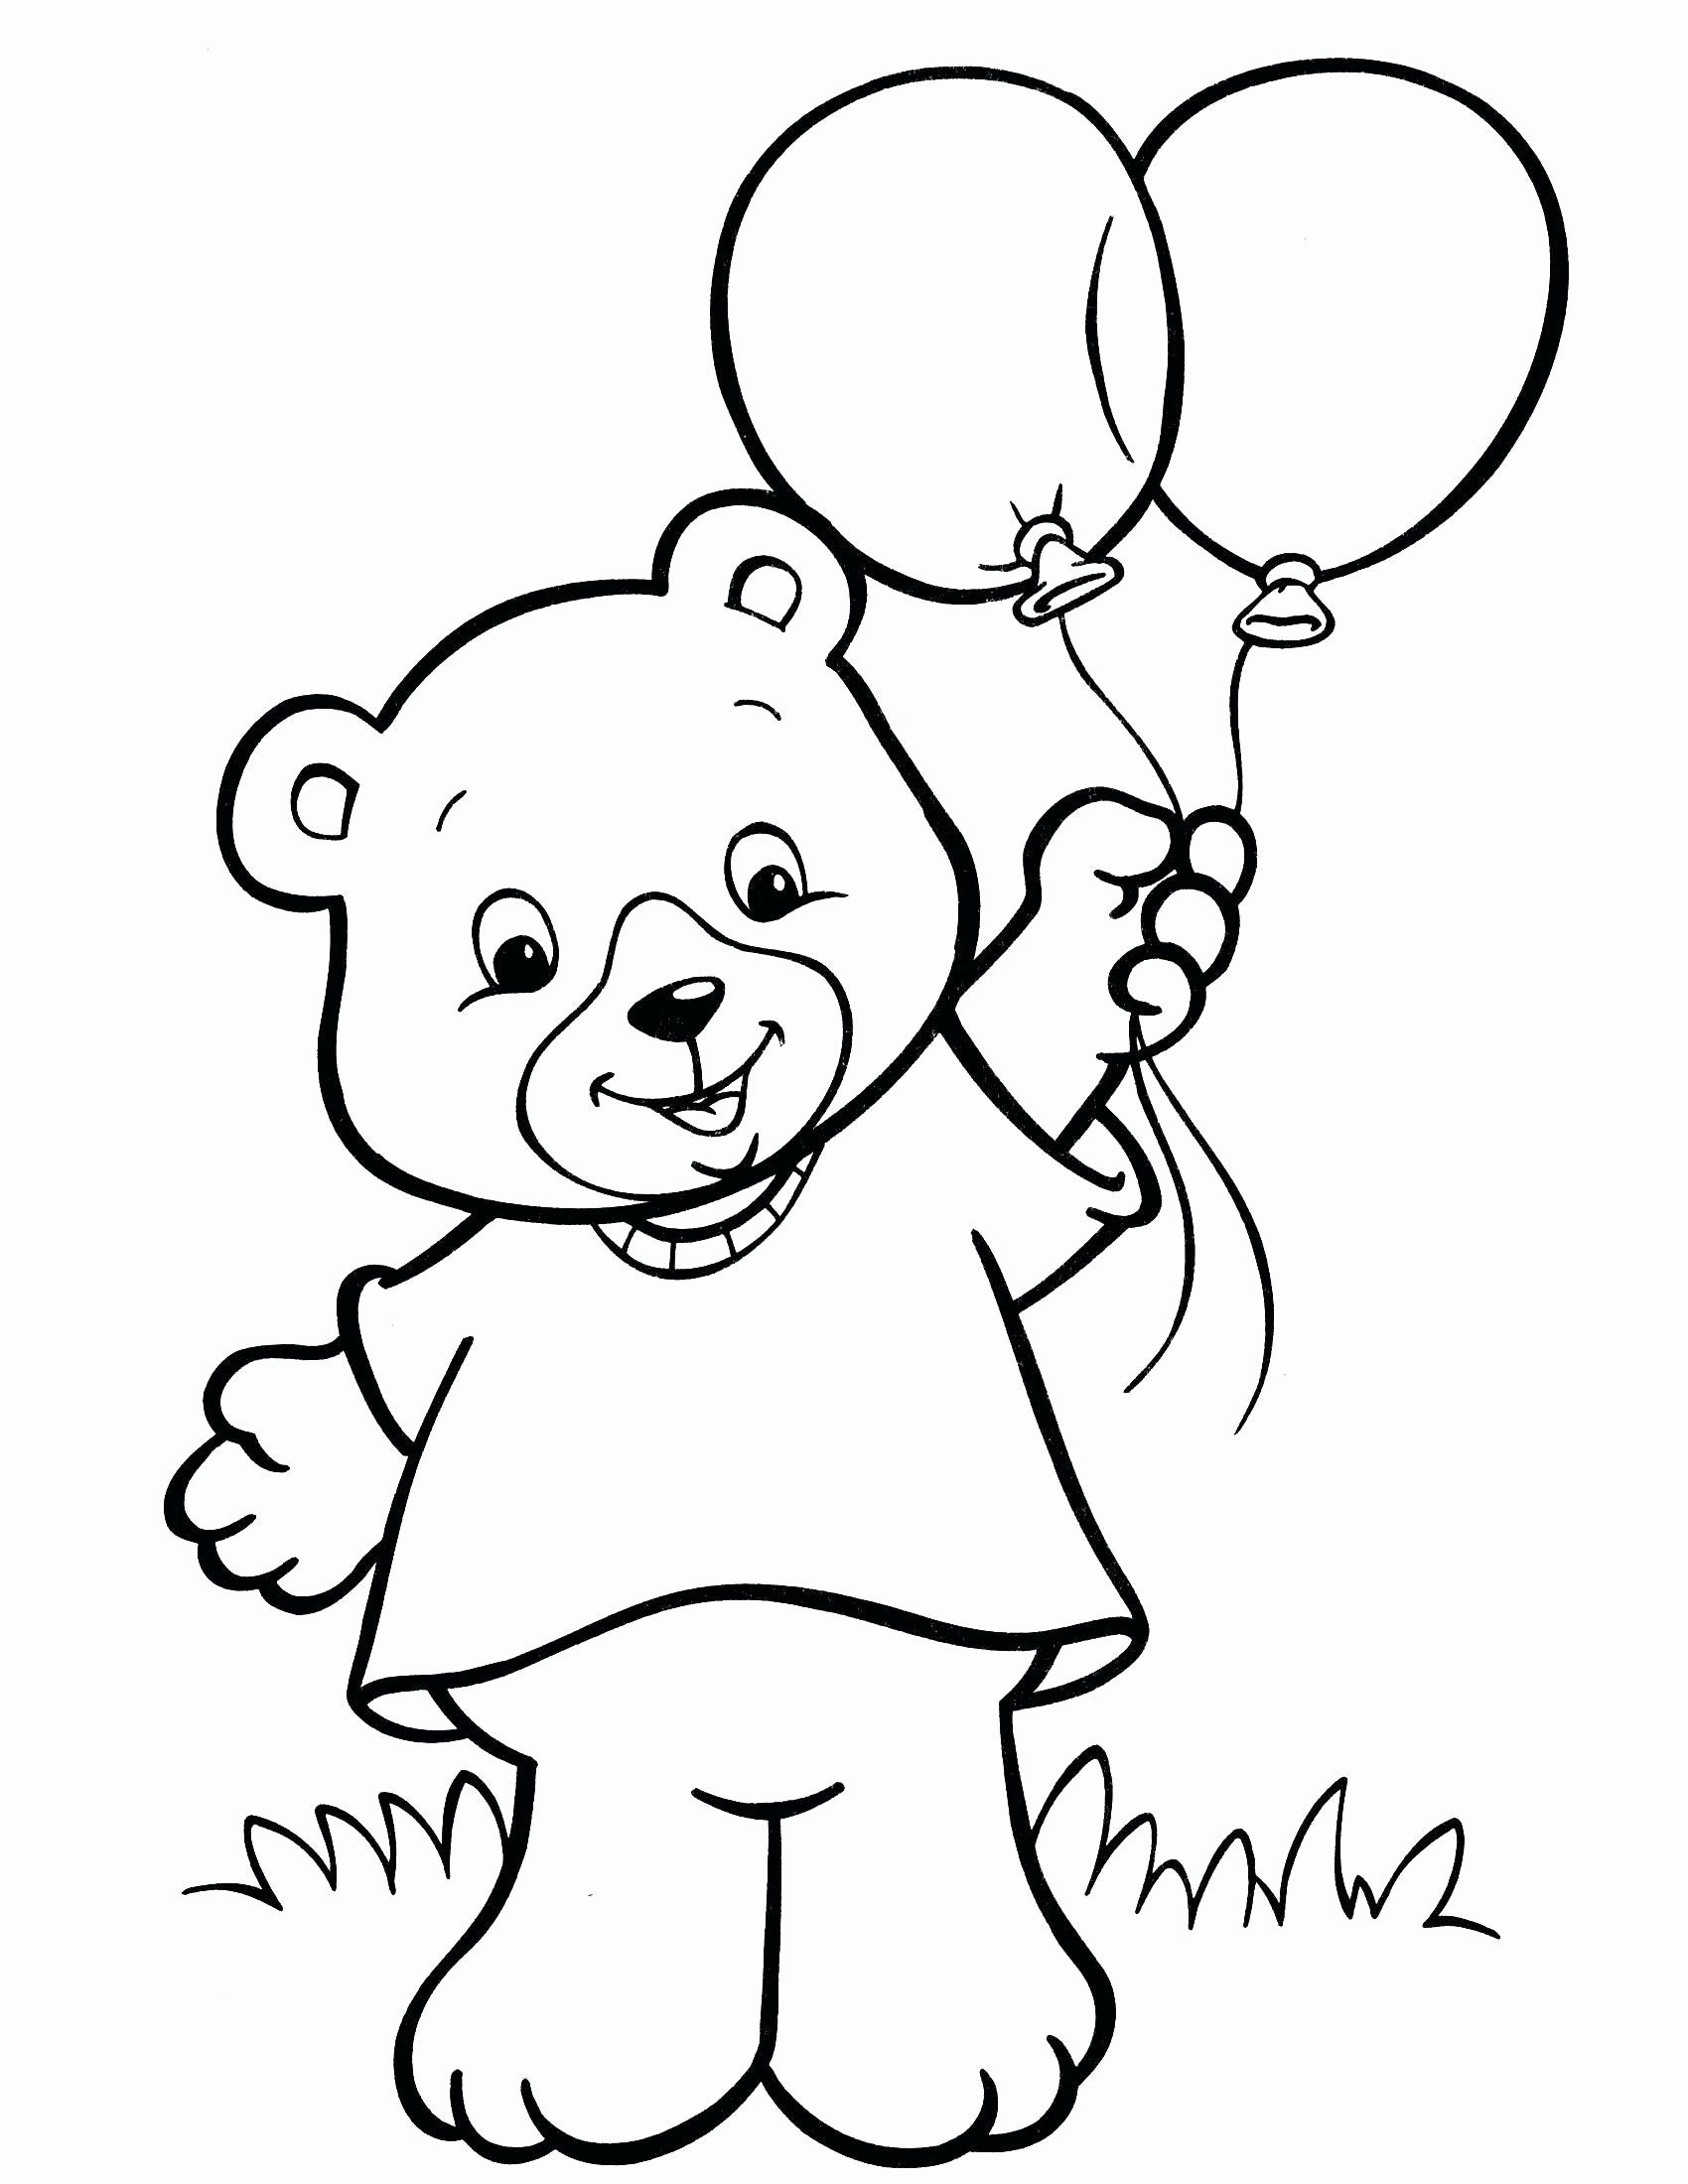 Happy 8th Birthday Coloring Page For Kids Holiday Coloring Pages Printables Free Wuppsy Birthday Coloring Pages Happy Birthday Coloring Pages Coloring Pages